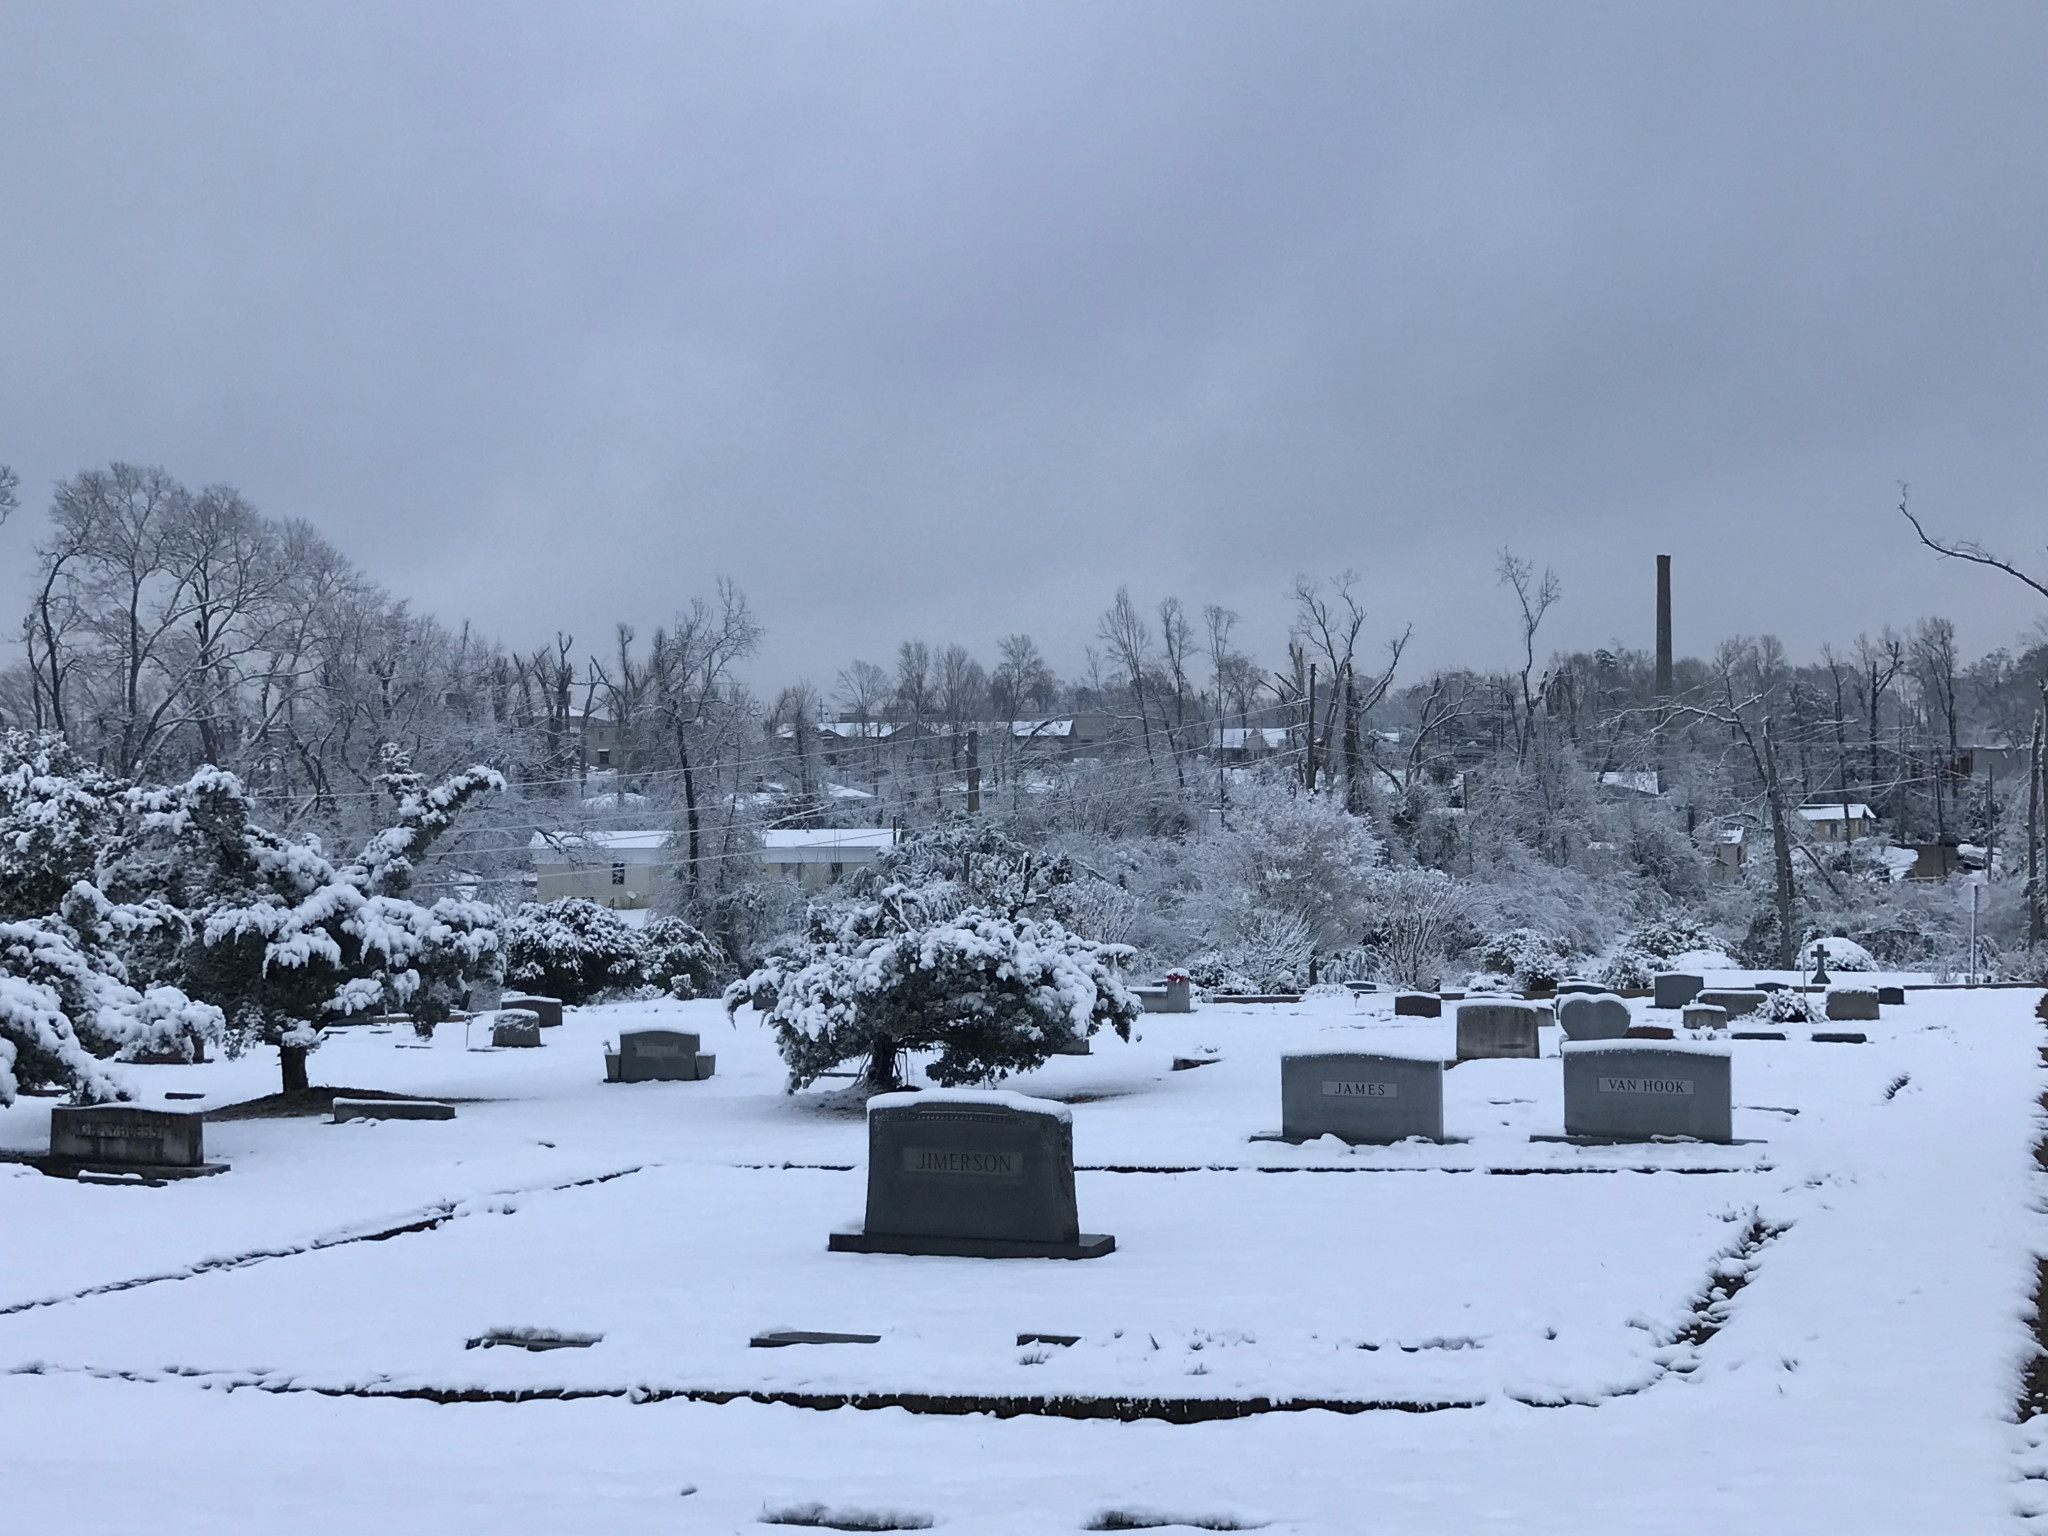 A snowy landscape at Greenwood Cemetery - Leader photo by Caleb Daniel